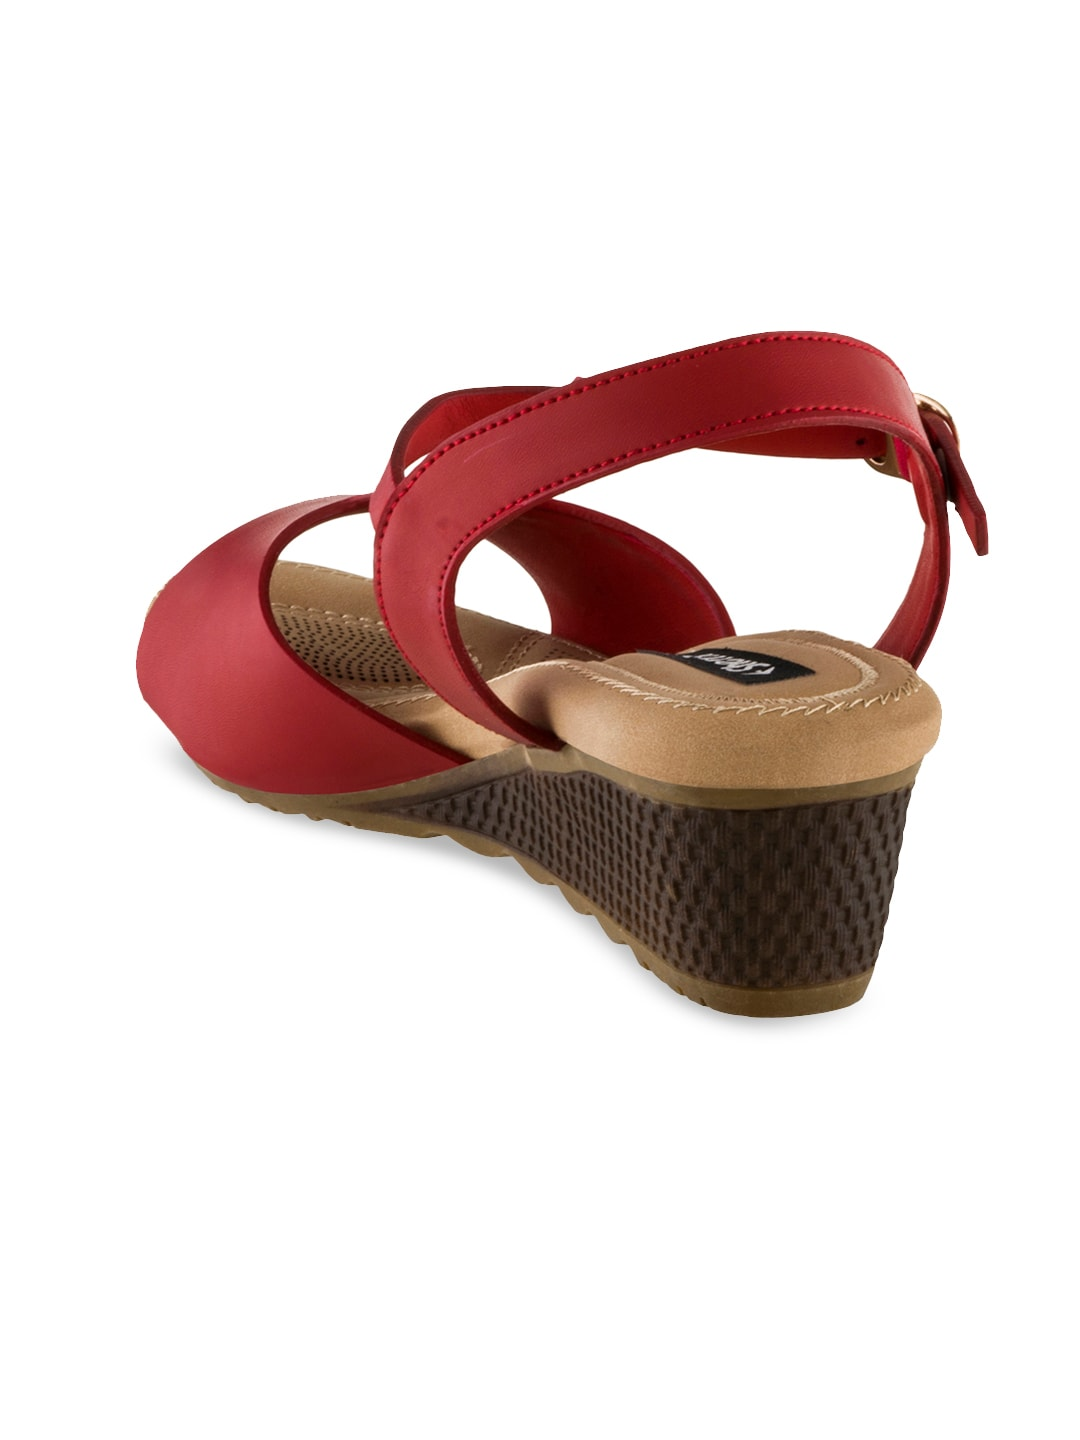 Sherrif Shoes Women Red Solid Sandals